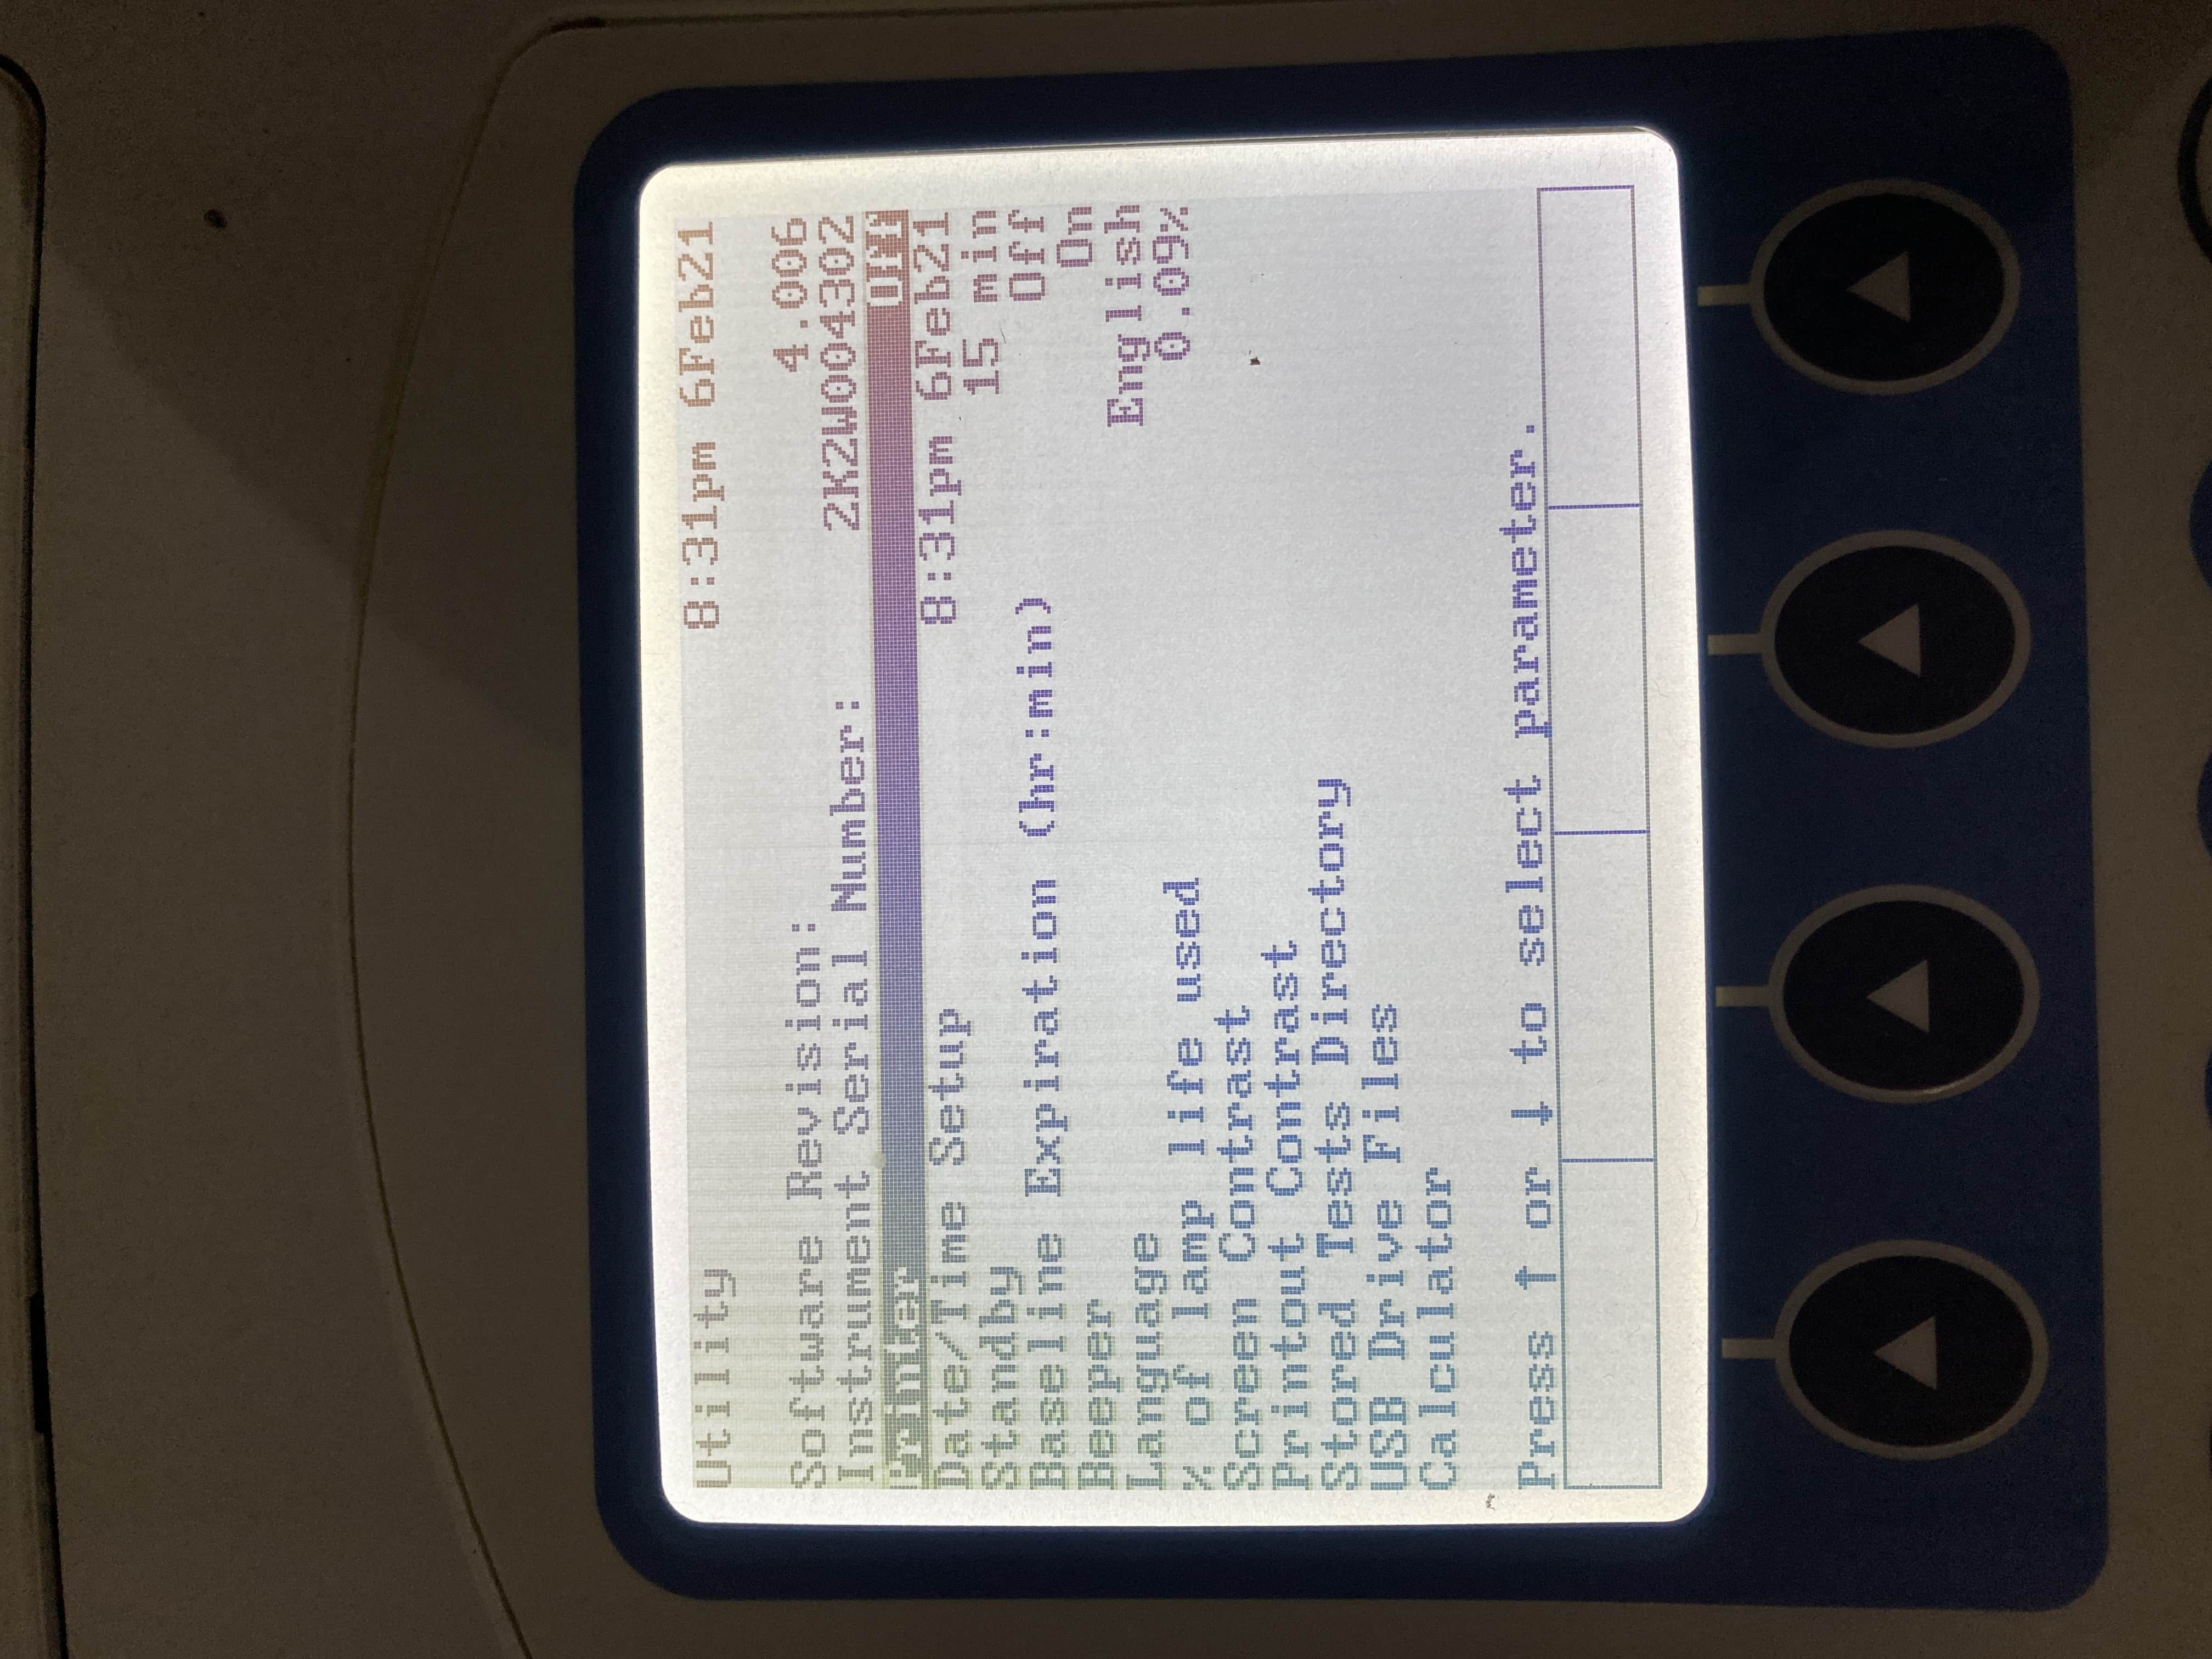 Thermo Fisher Biomate 3S UV-VIS spectrometer with 6 cell option